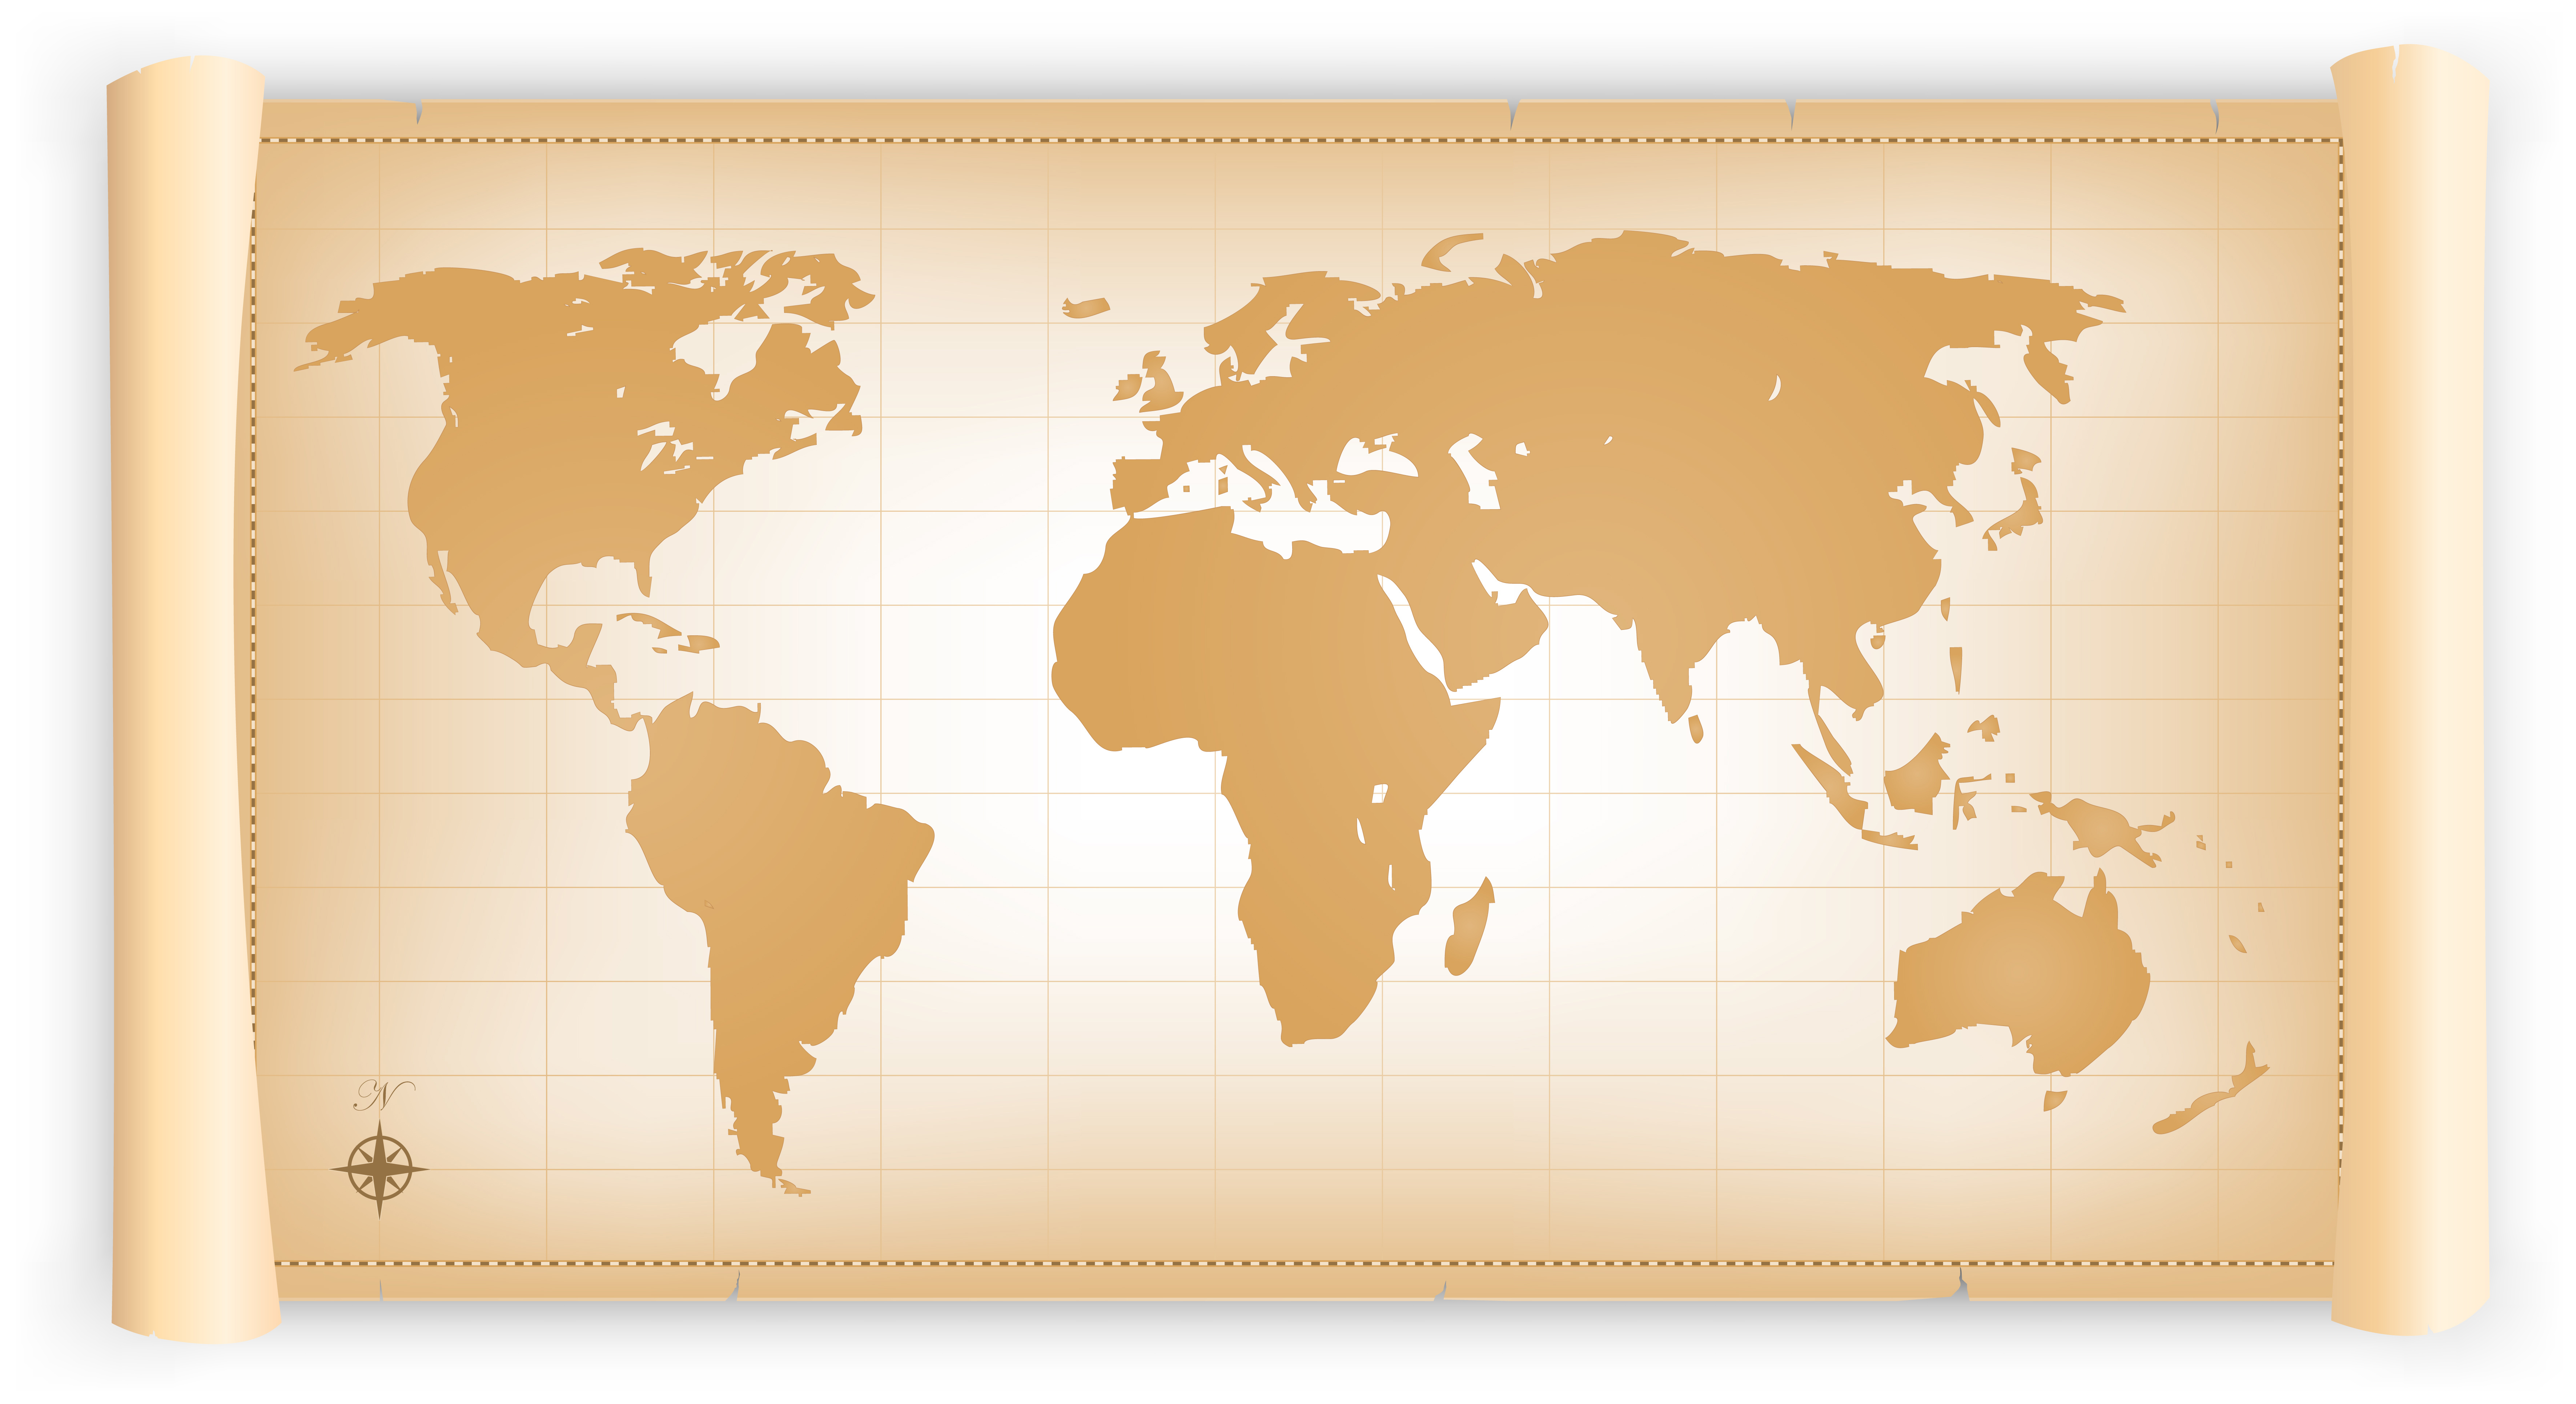 Vintage World Map On Parchment Scroll - Download Free ...